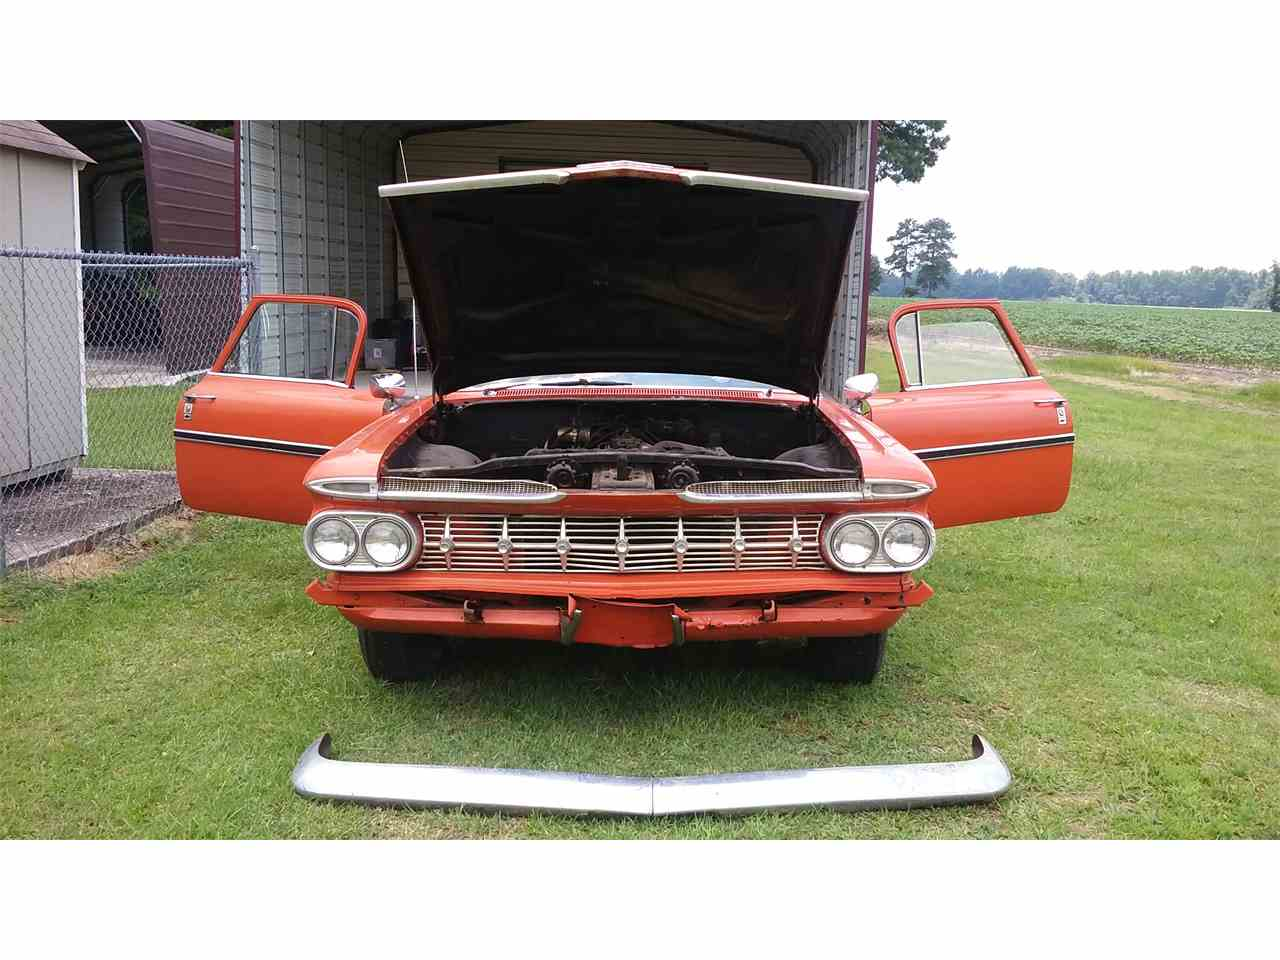 Large Picture of 1959 El Camino - $9,500.00 - IWY1